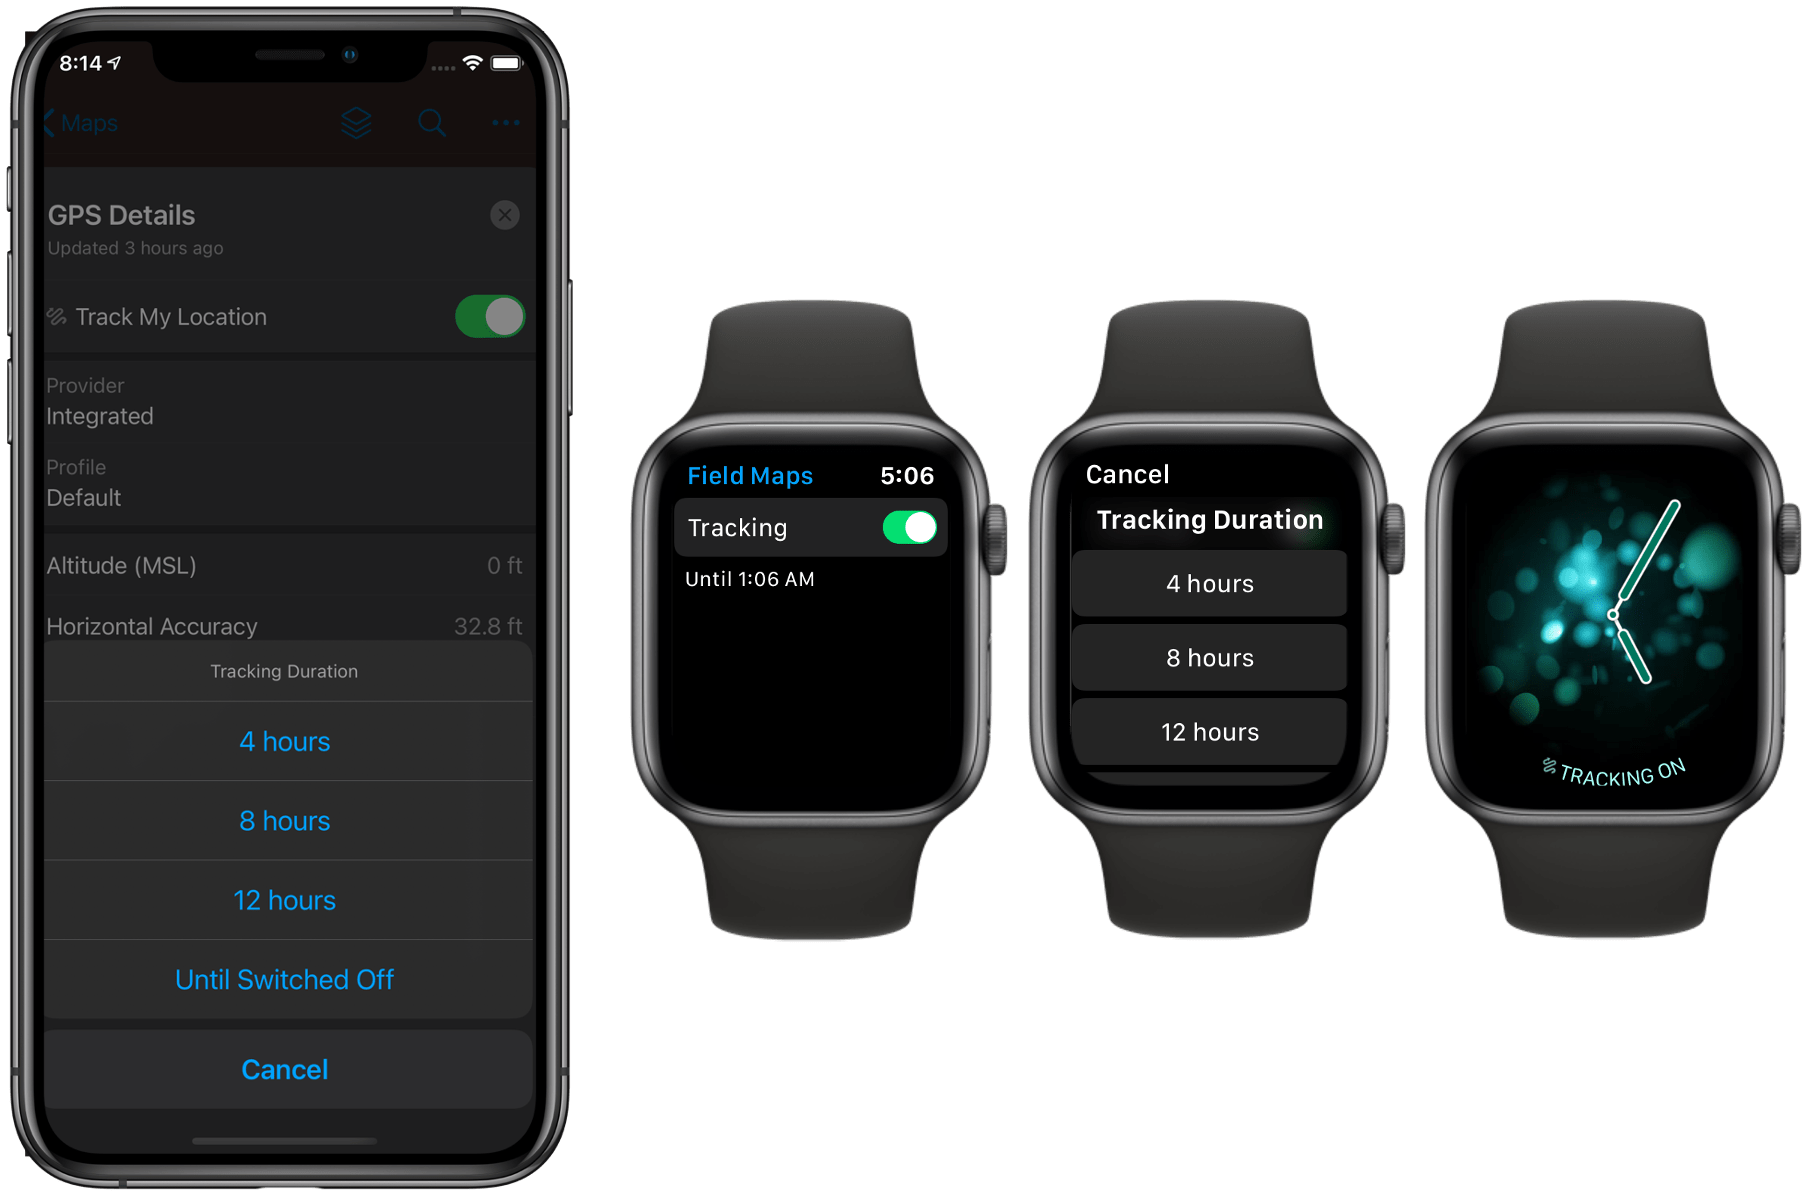 Apple Watch support for tracking